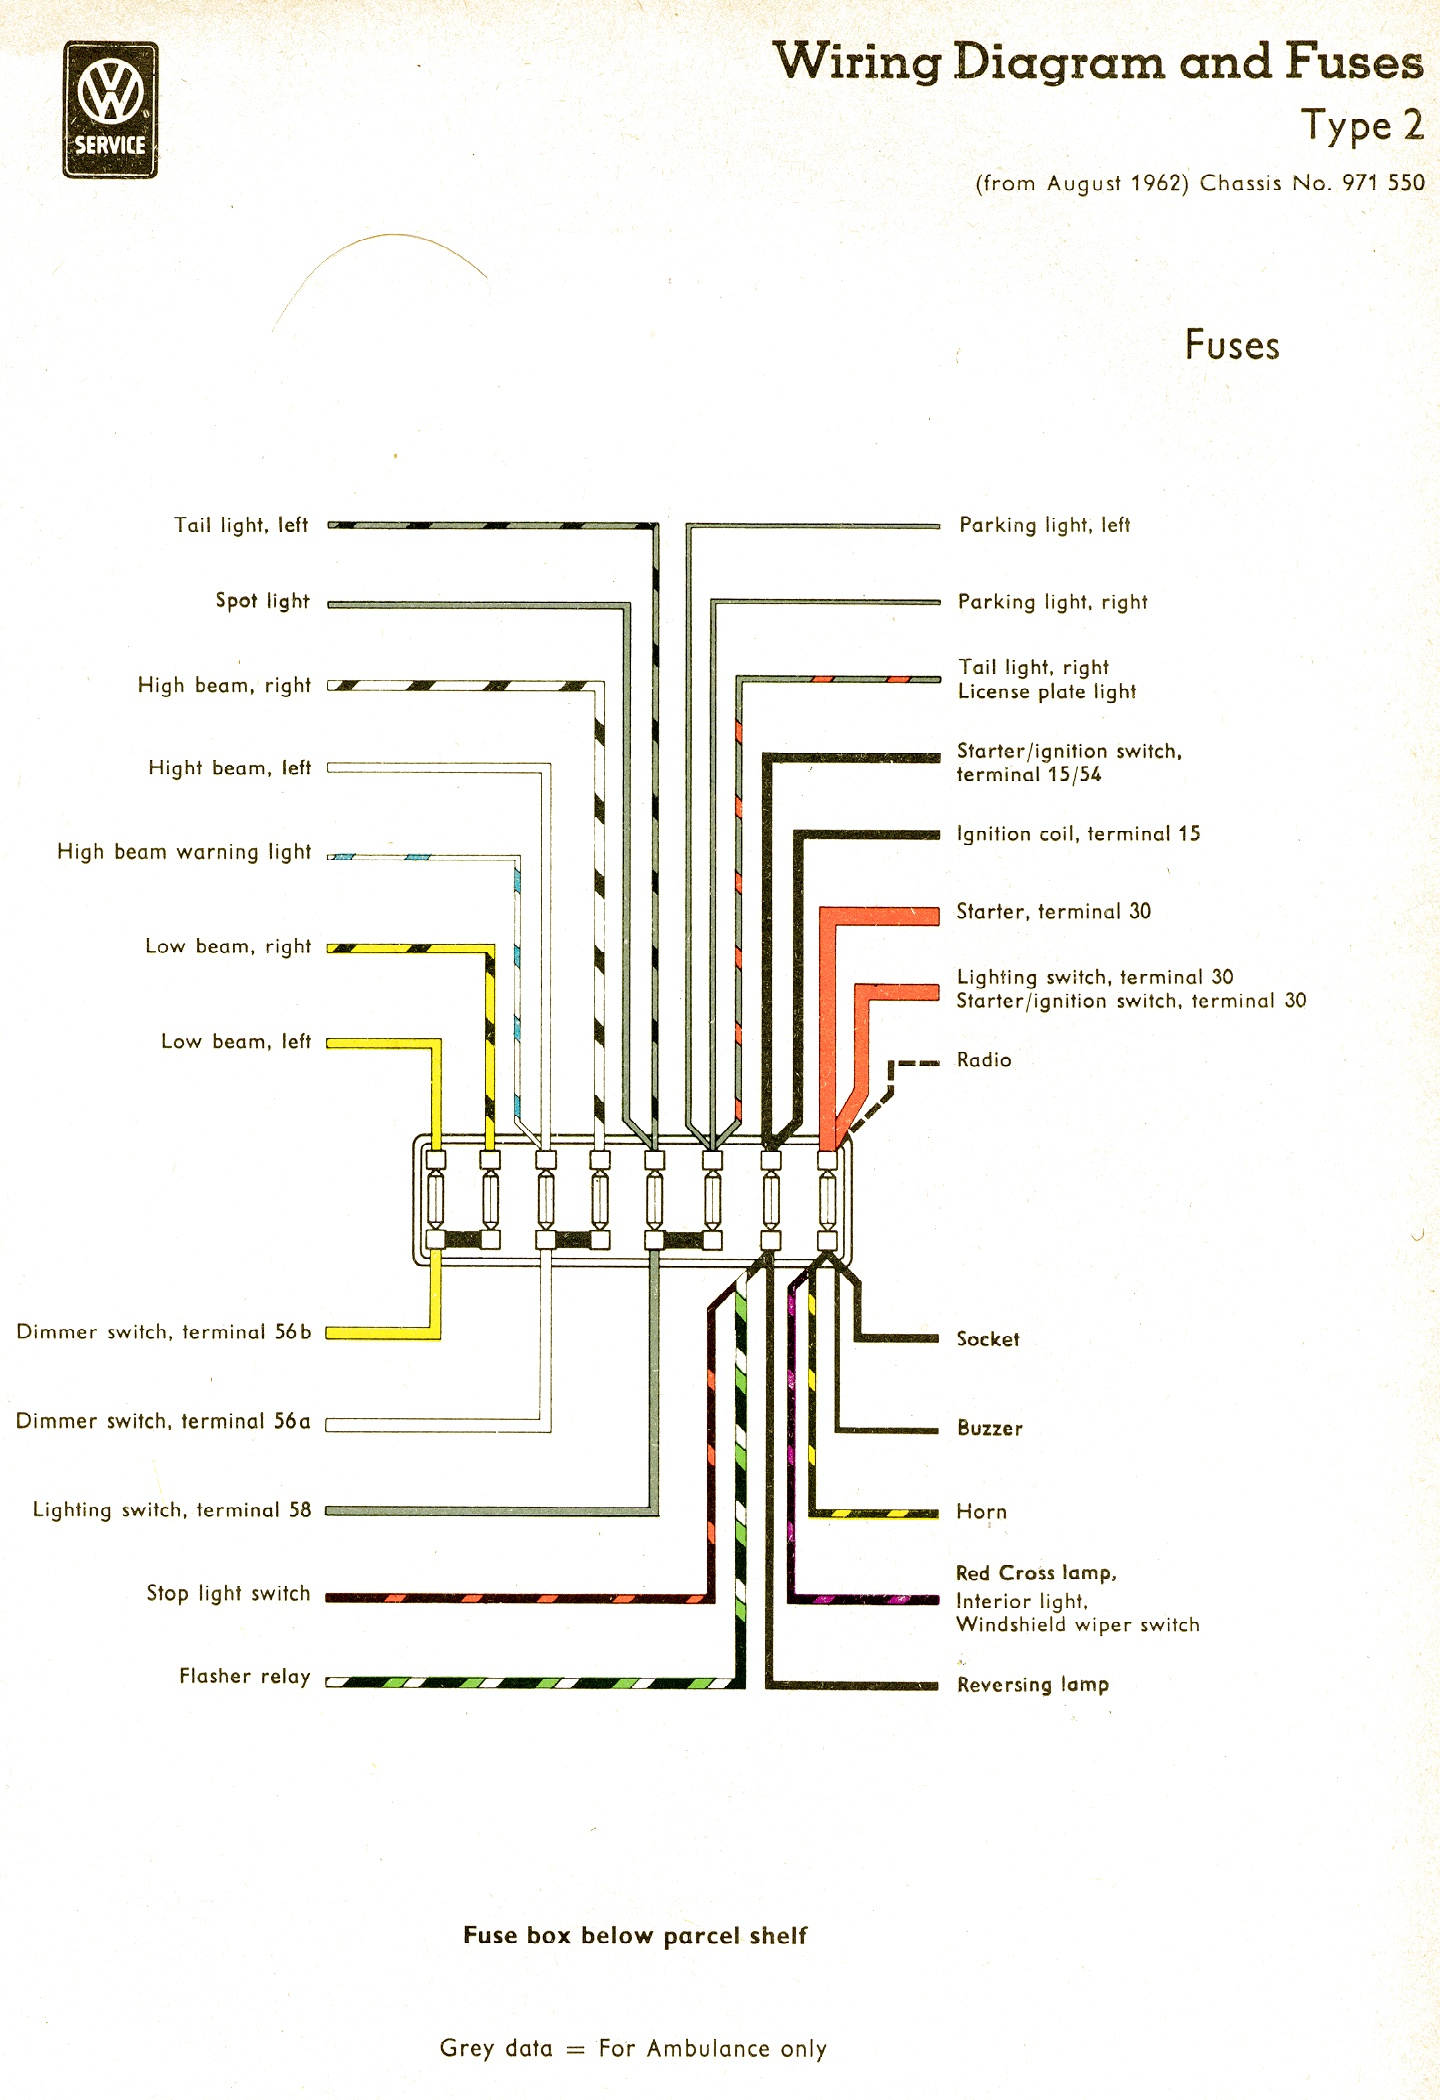 bus 62 fuse vw wiring diagrams fuse wiring diagram at webbmarketing.co